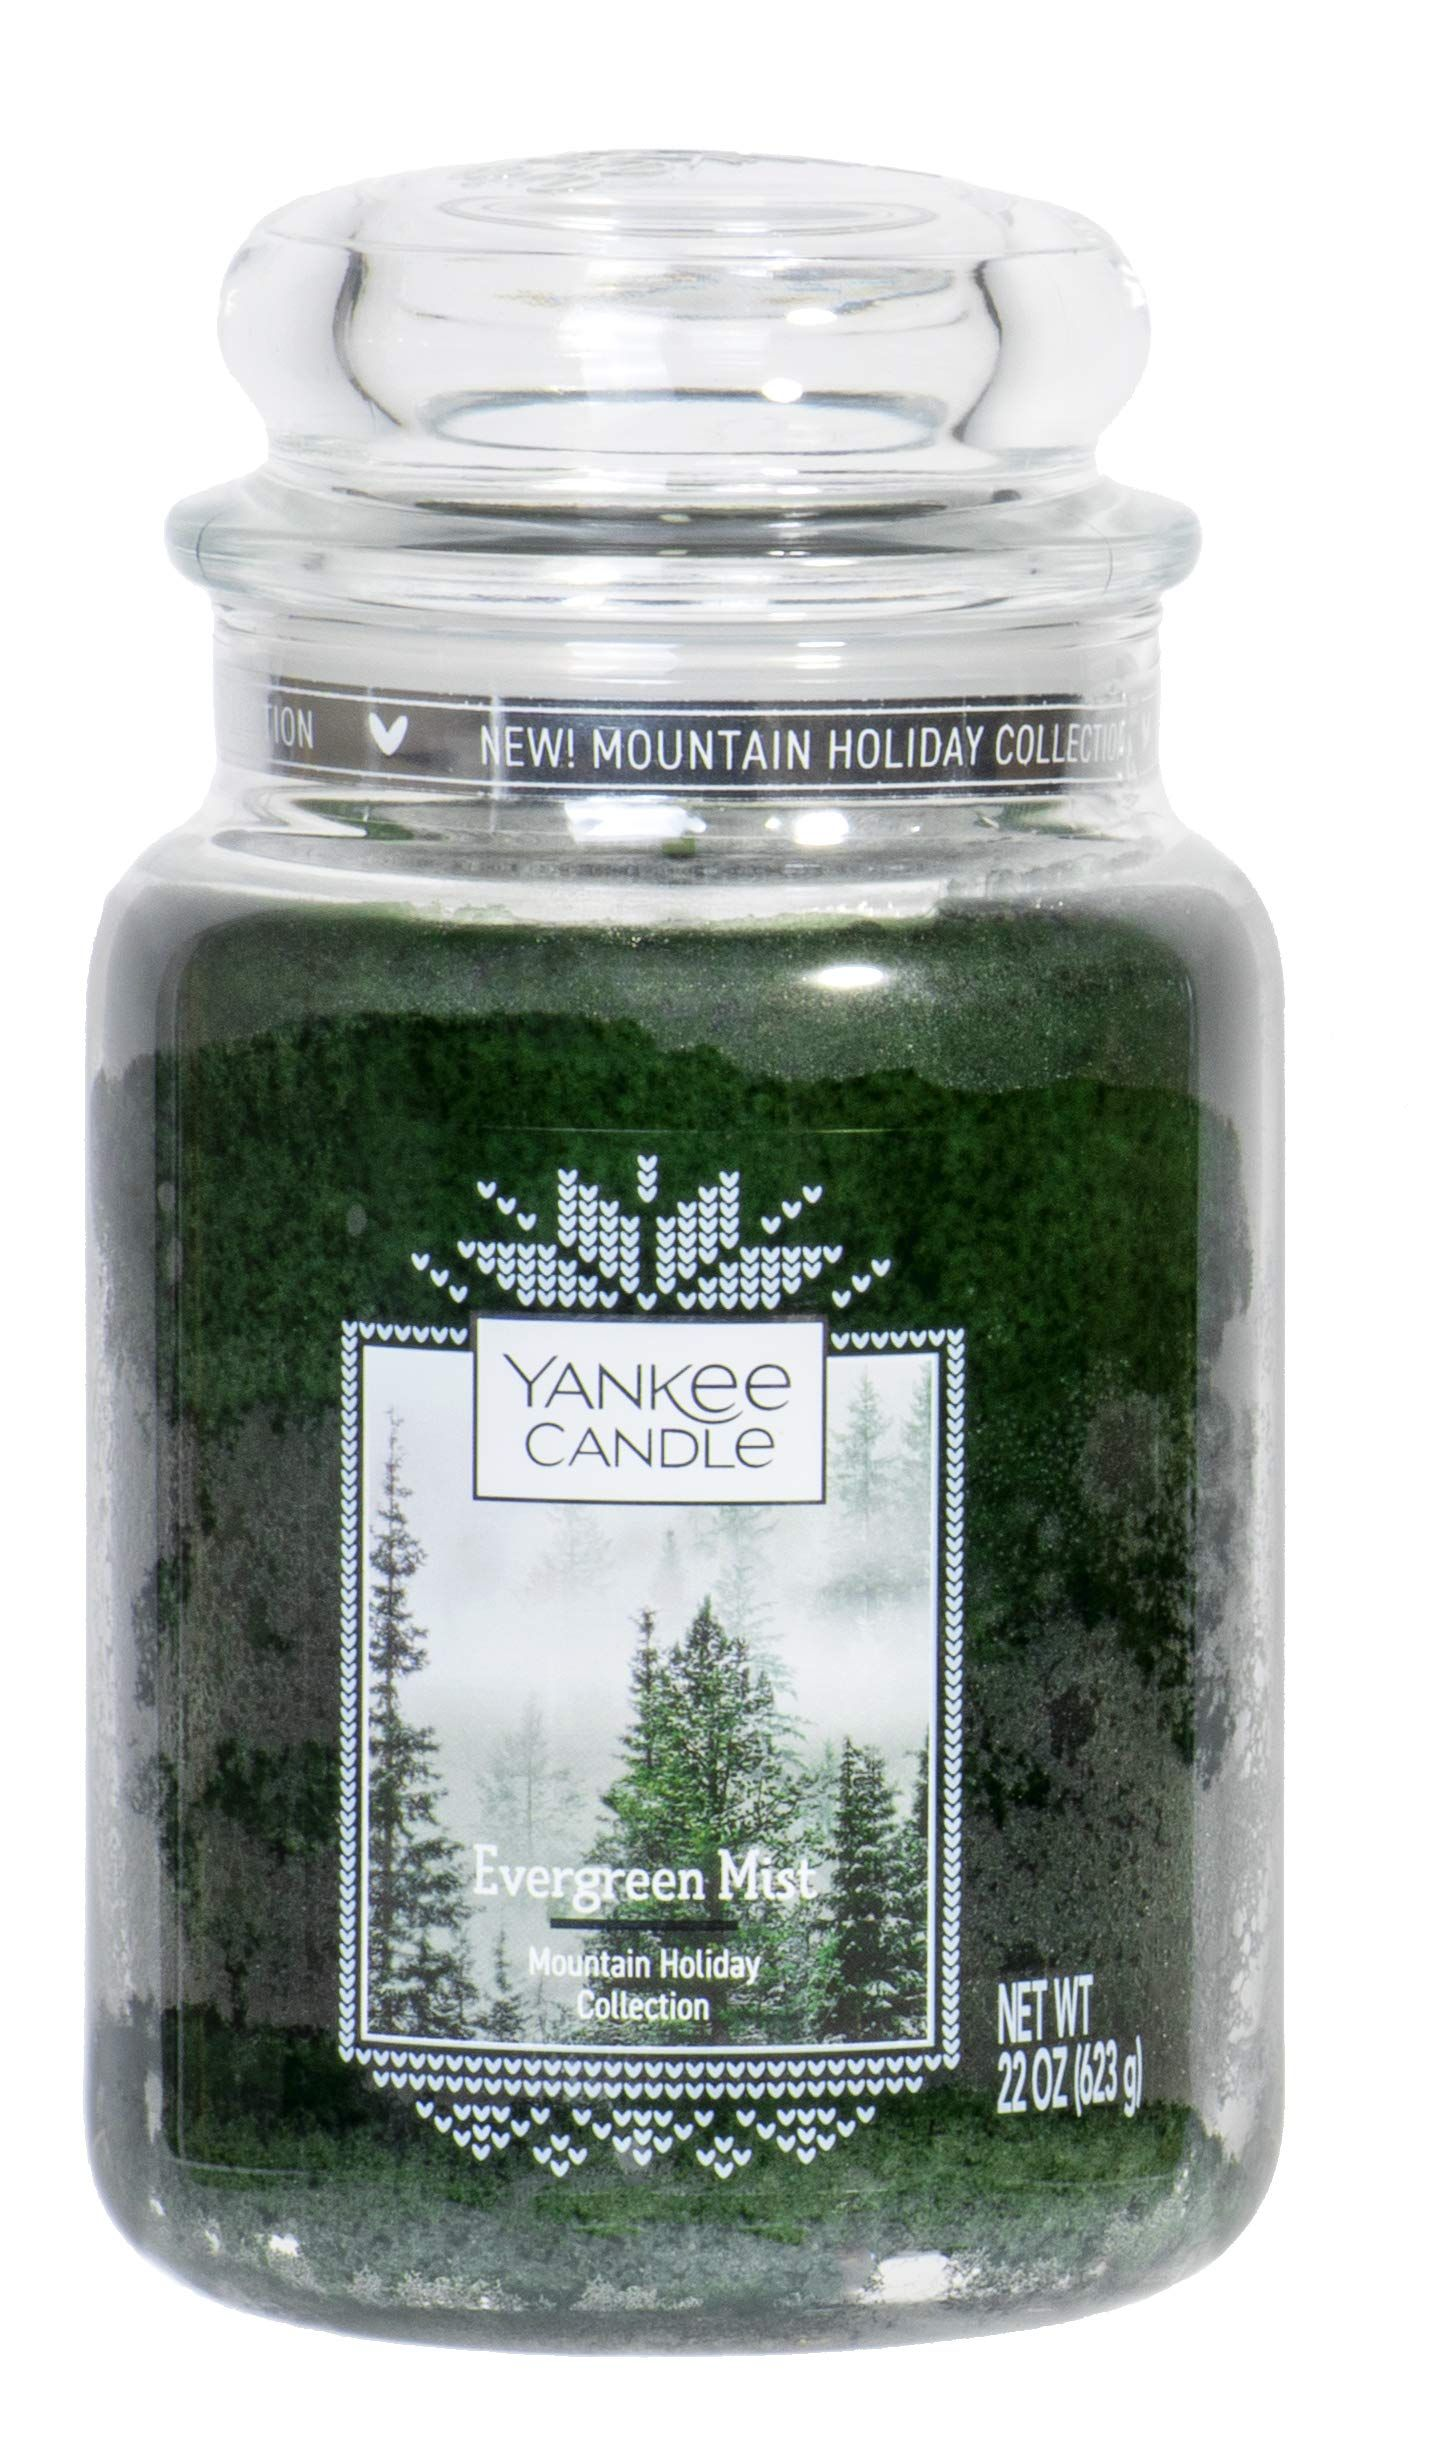 Yankee Candle Evergreen Farmers Collection Yankee Candle Glass Jars Candle Jars